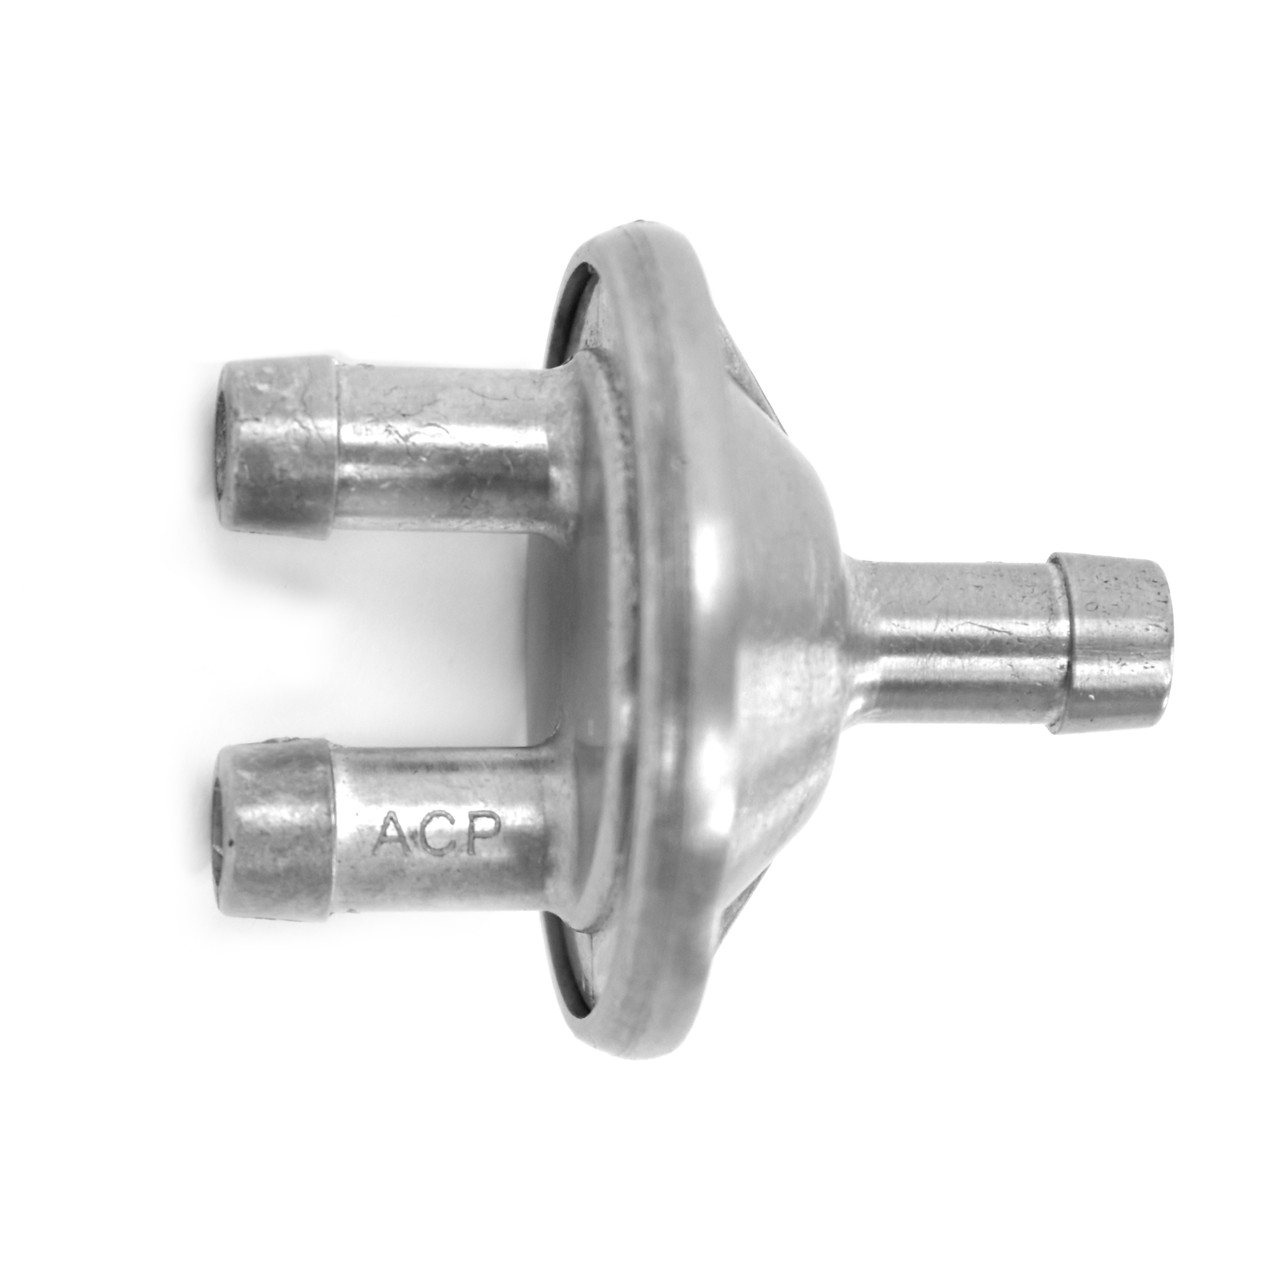 ACP FM-VCV01 1967-1973 Ford Mustang Vacuum Check Valve for Headlight/Tilt-Away Column